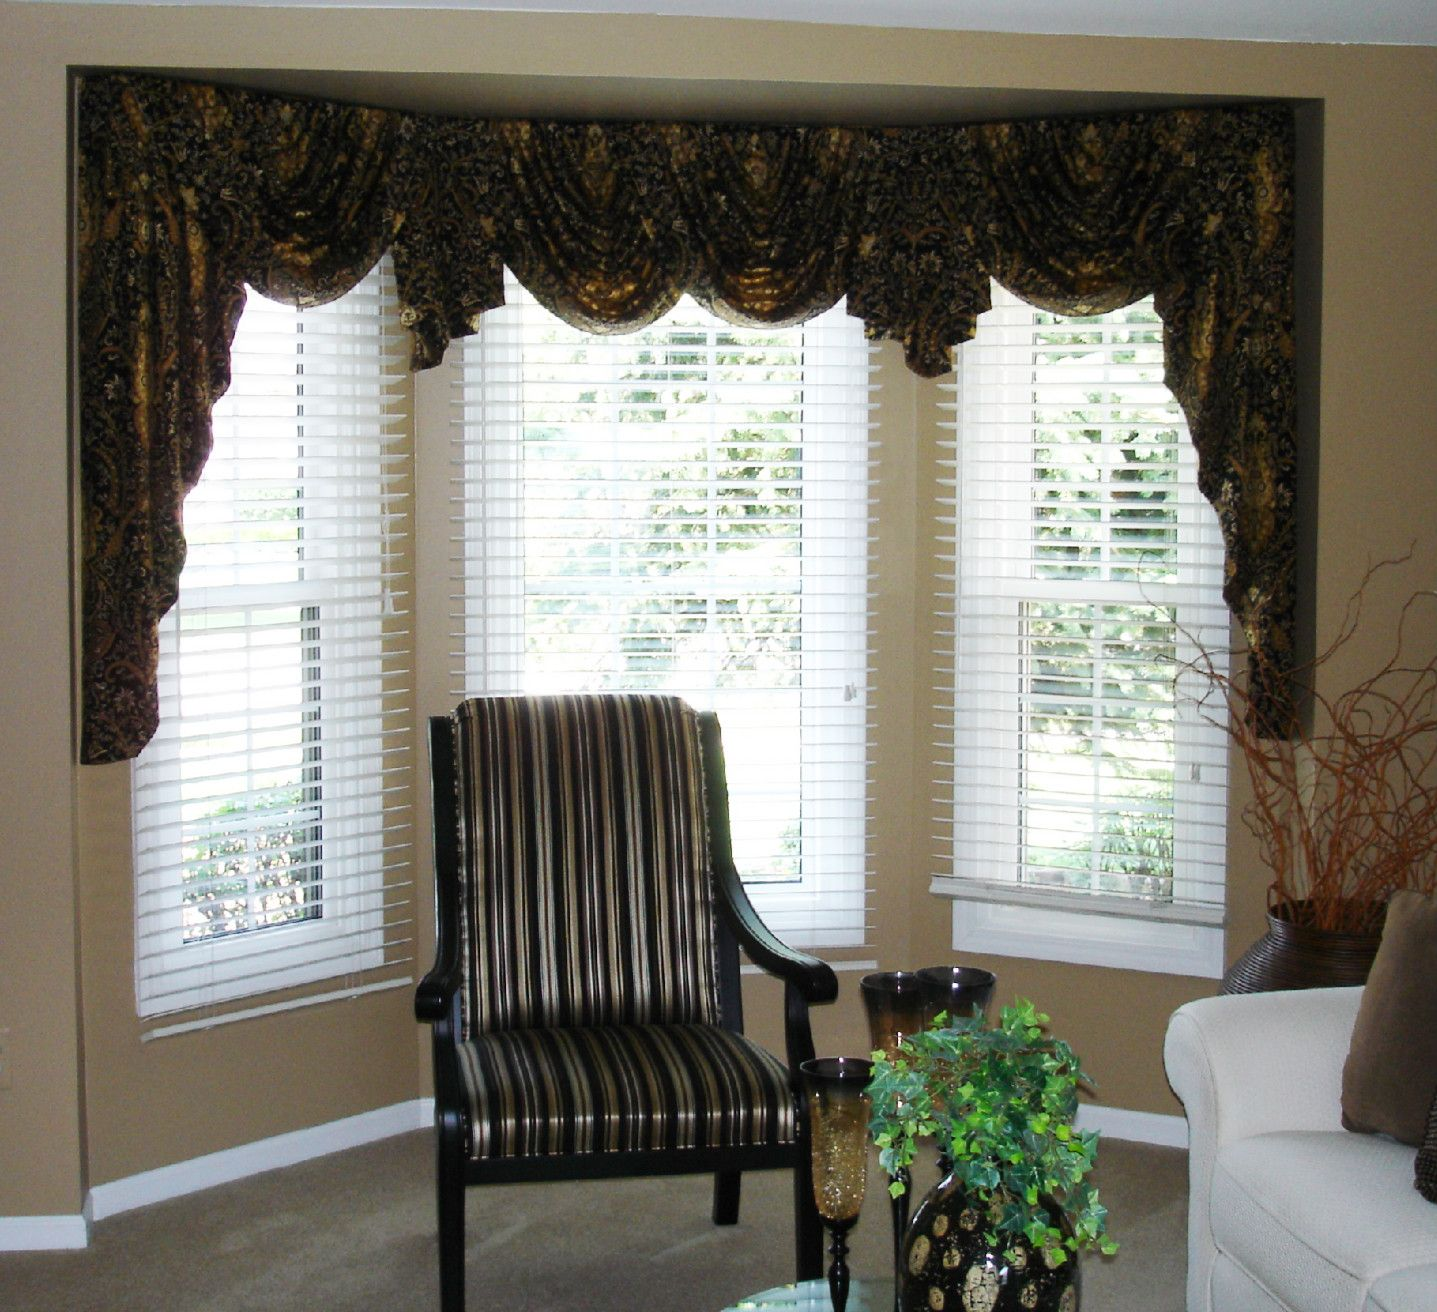 Swag Valances for Bay Windows | swags and jabots in a bay ...